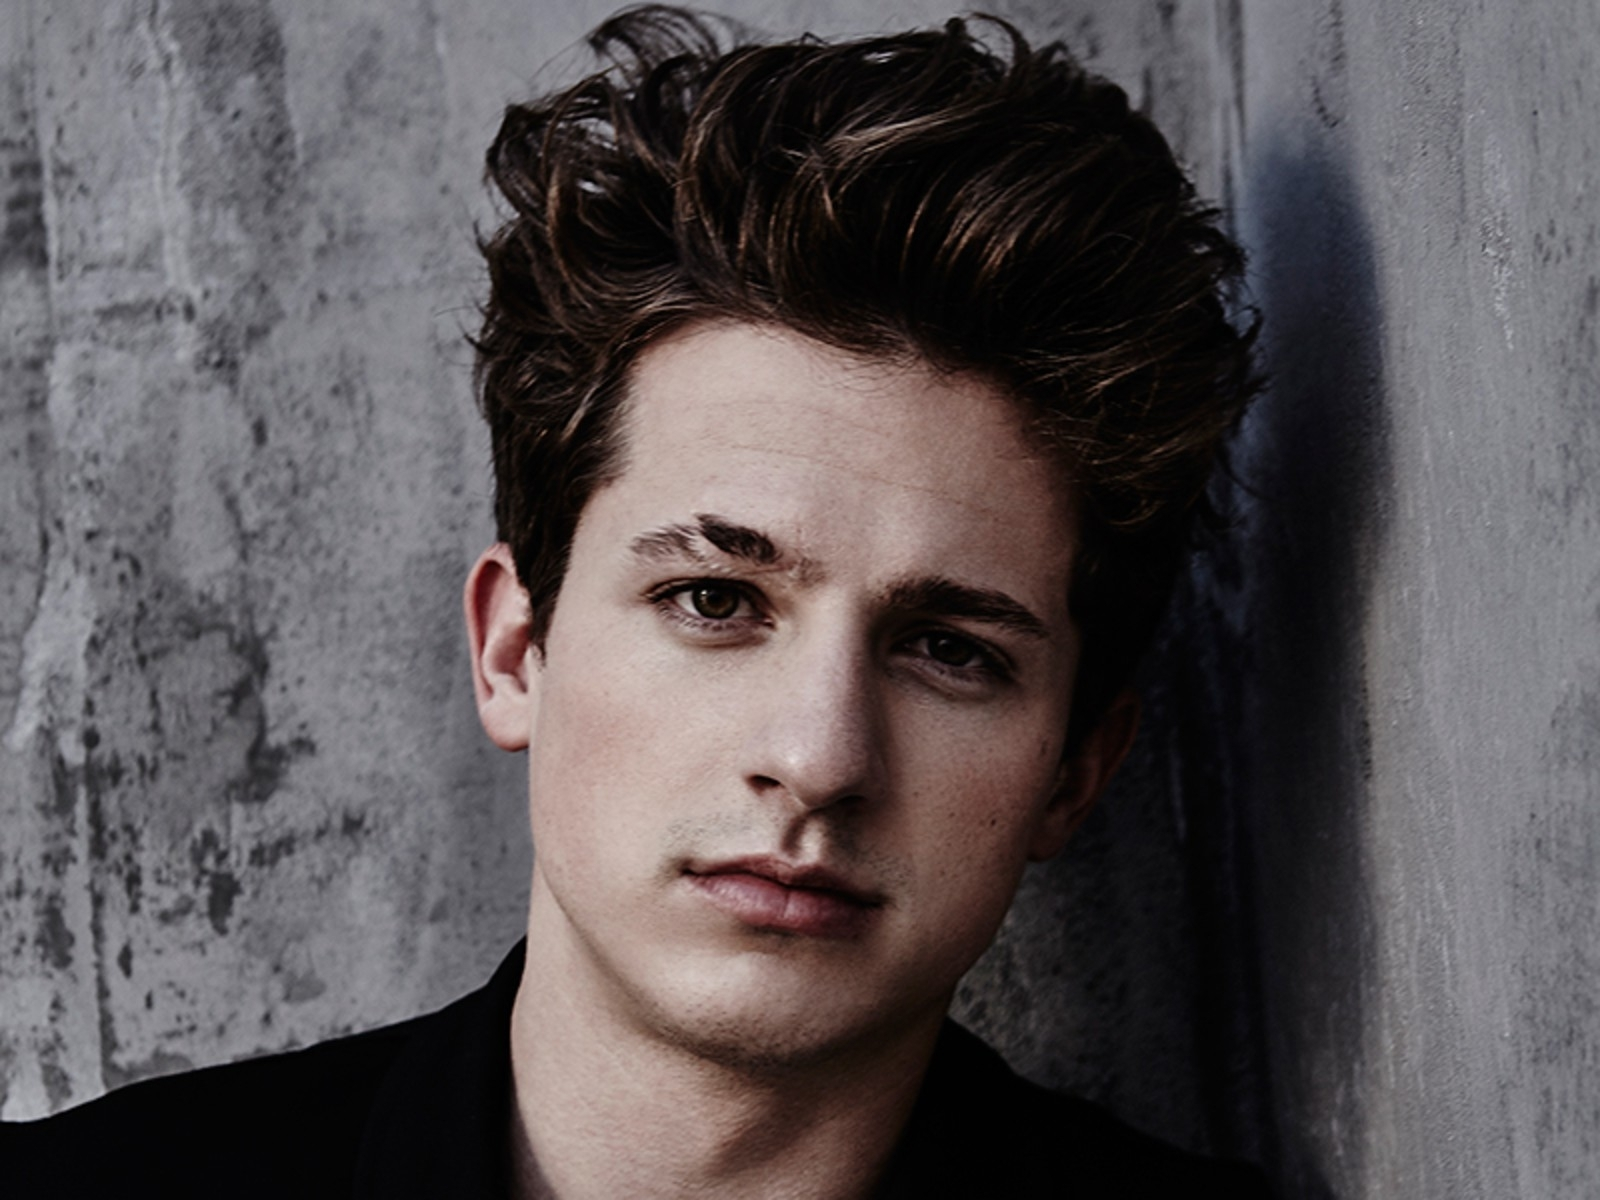 charlie puth - biographie, news, clips, paroles de chansons - nrj.fr